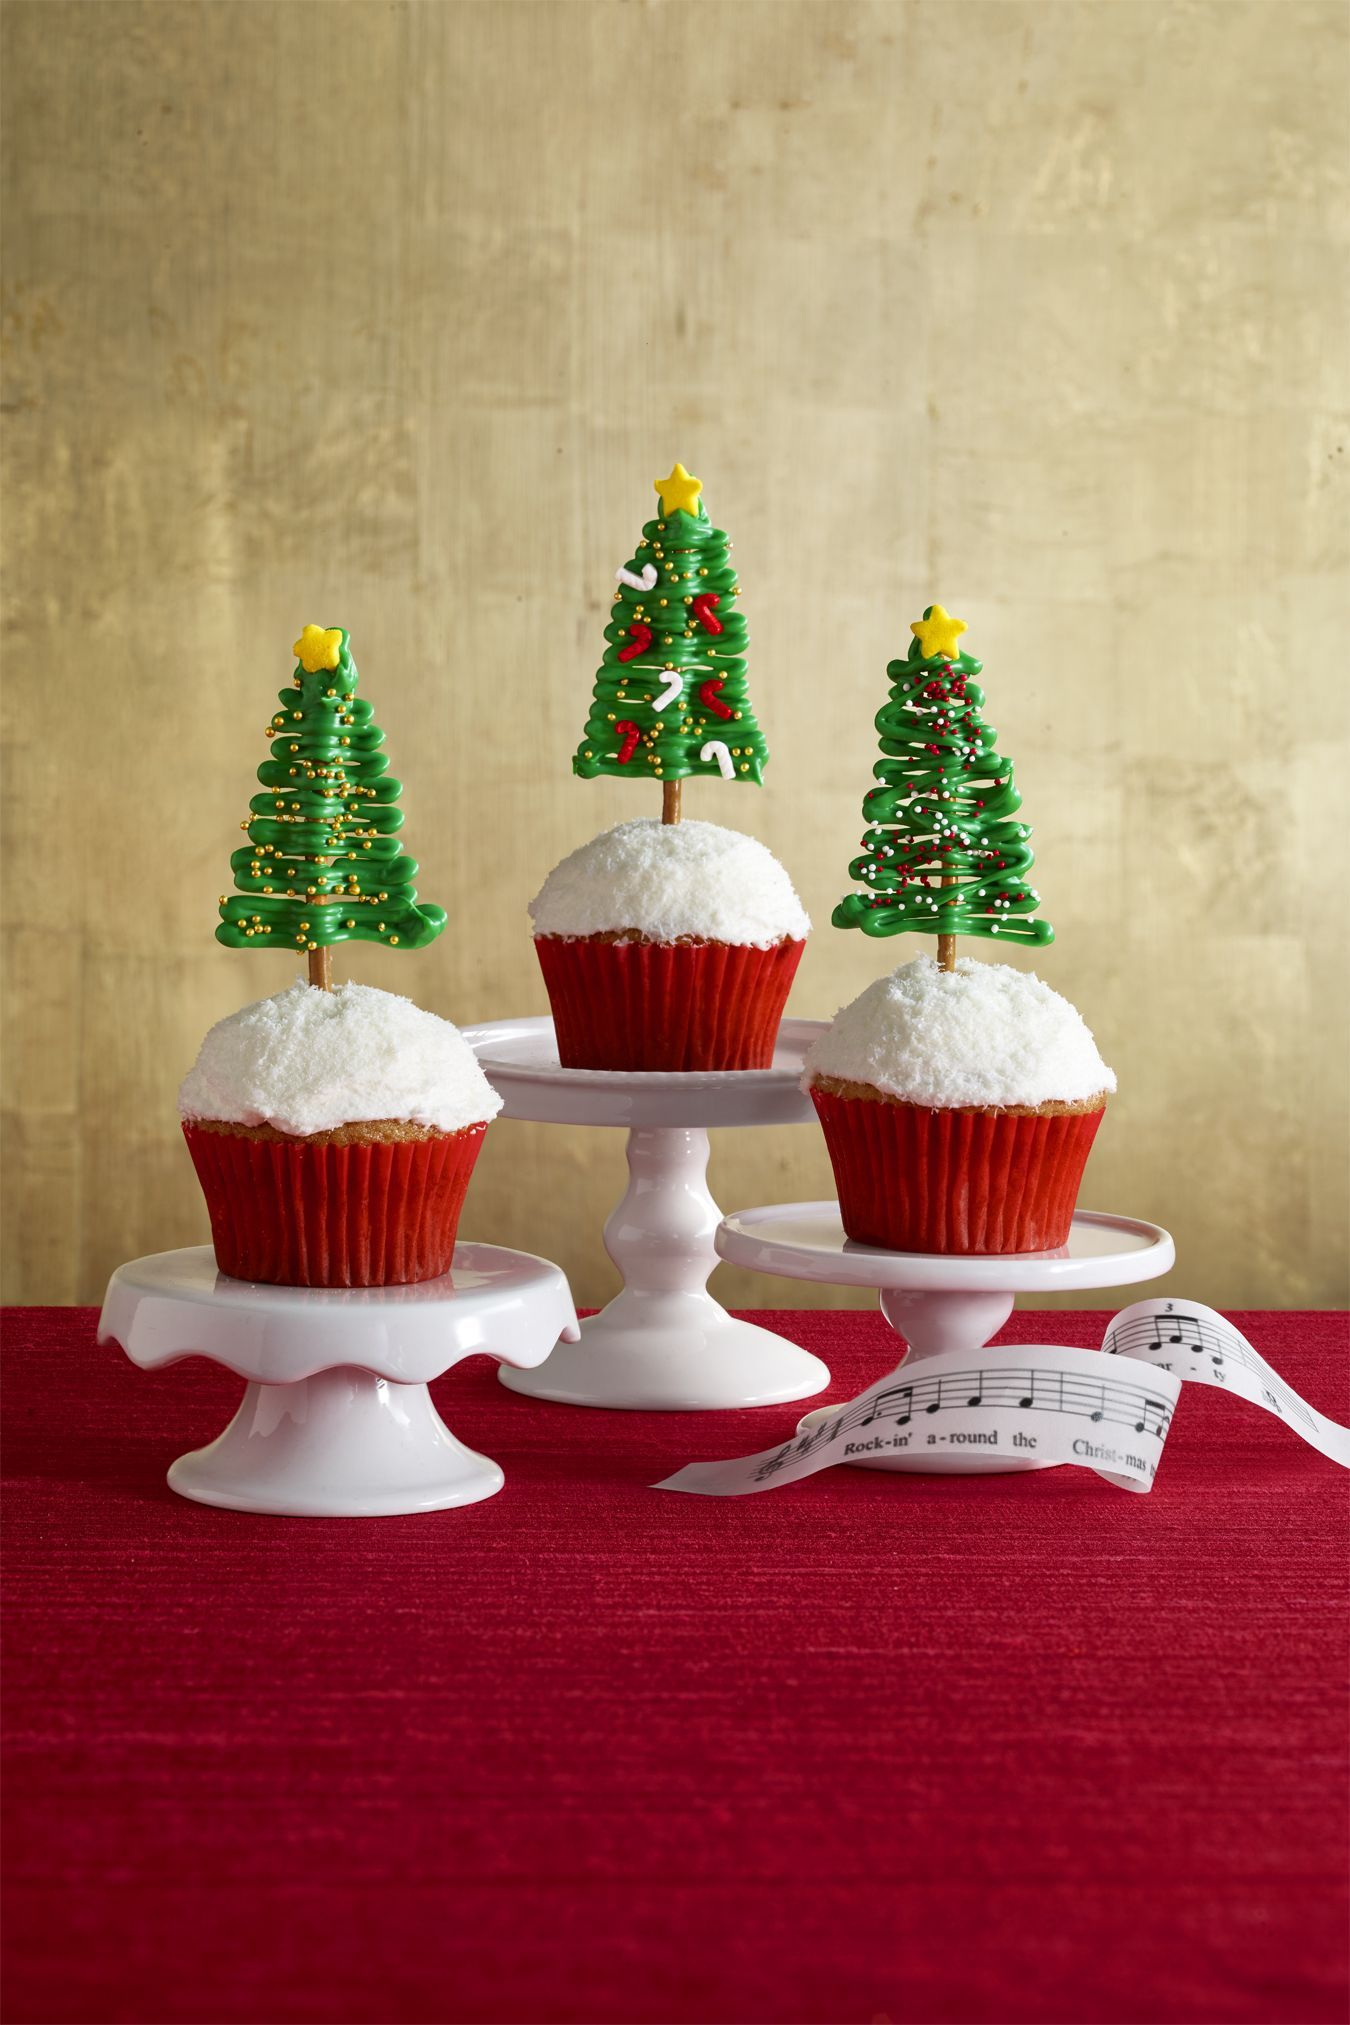 40 Christmas Cupcakes To Bake Recipe Ideas For Holiday Cupcakes